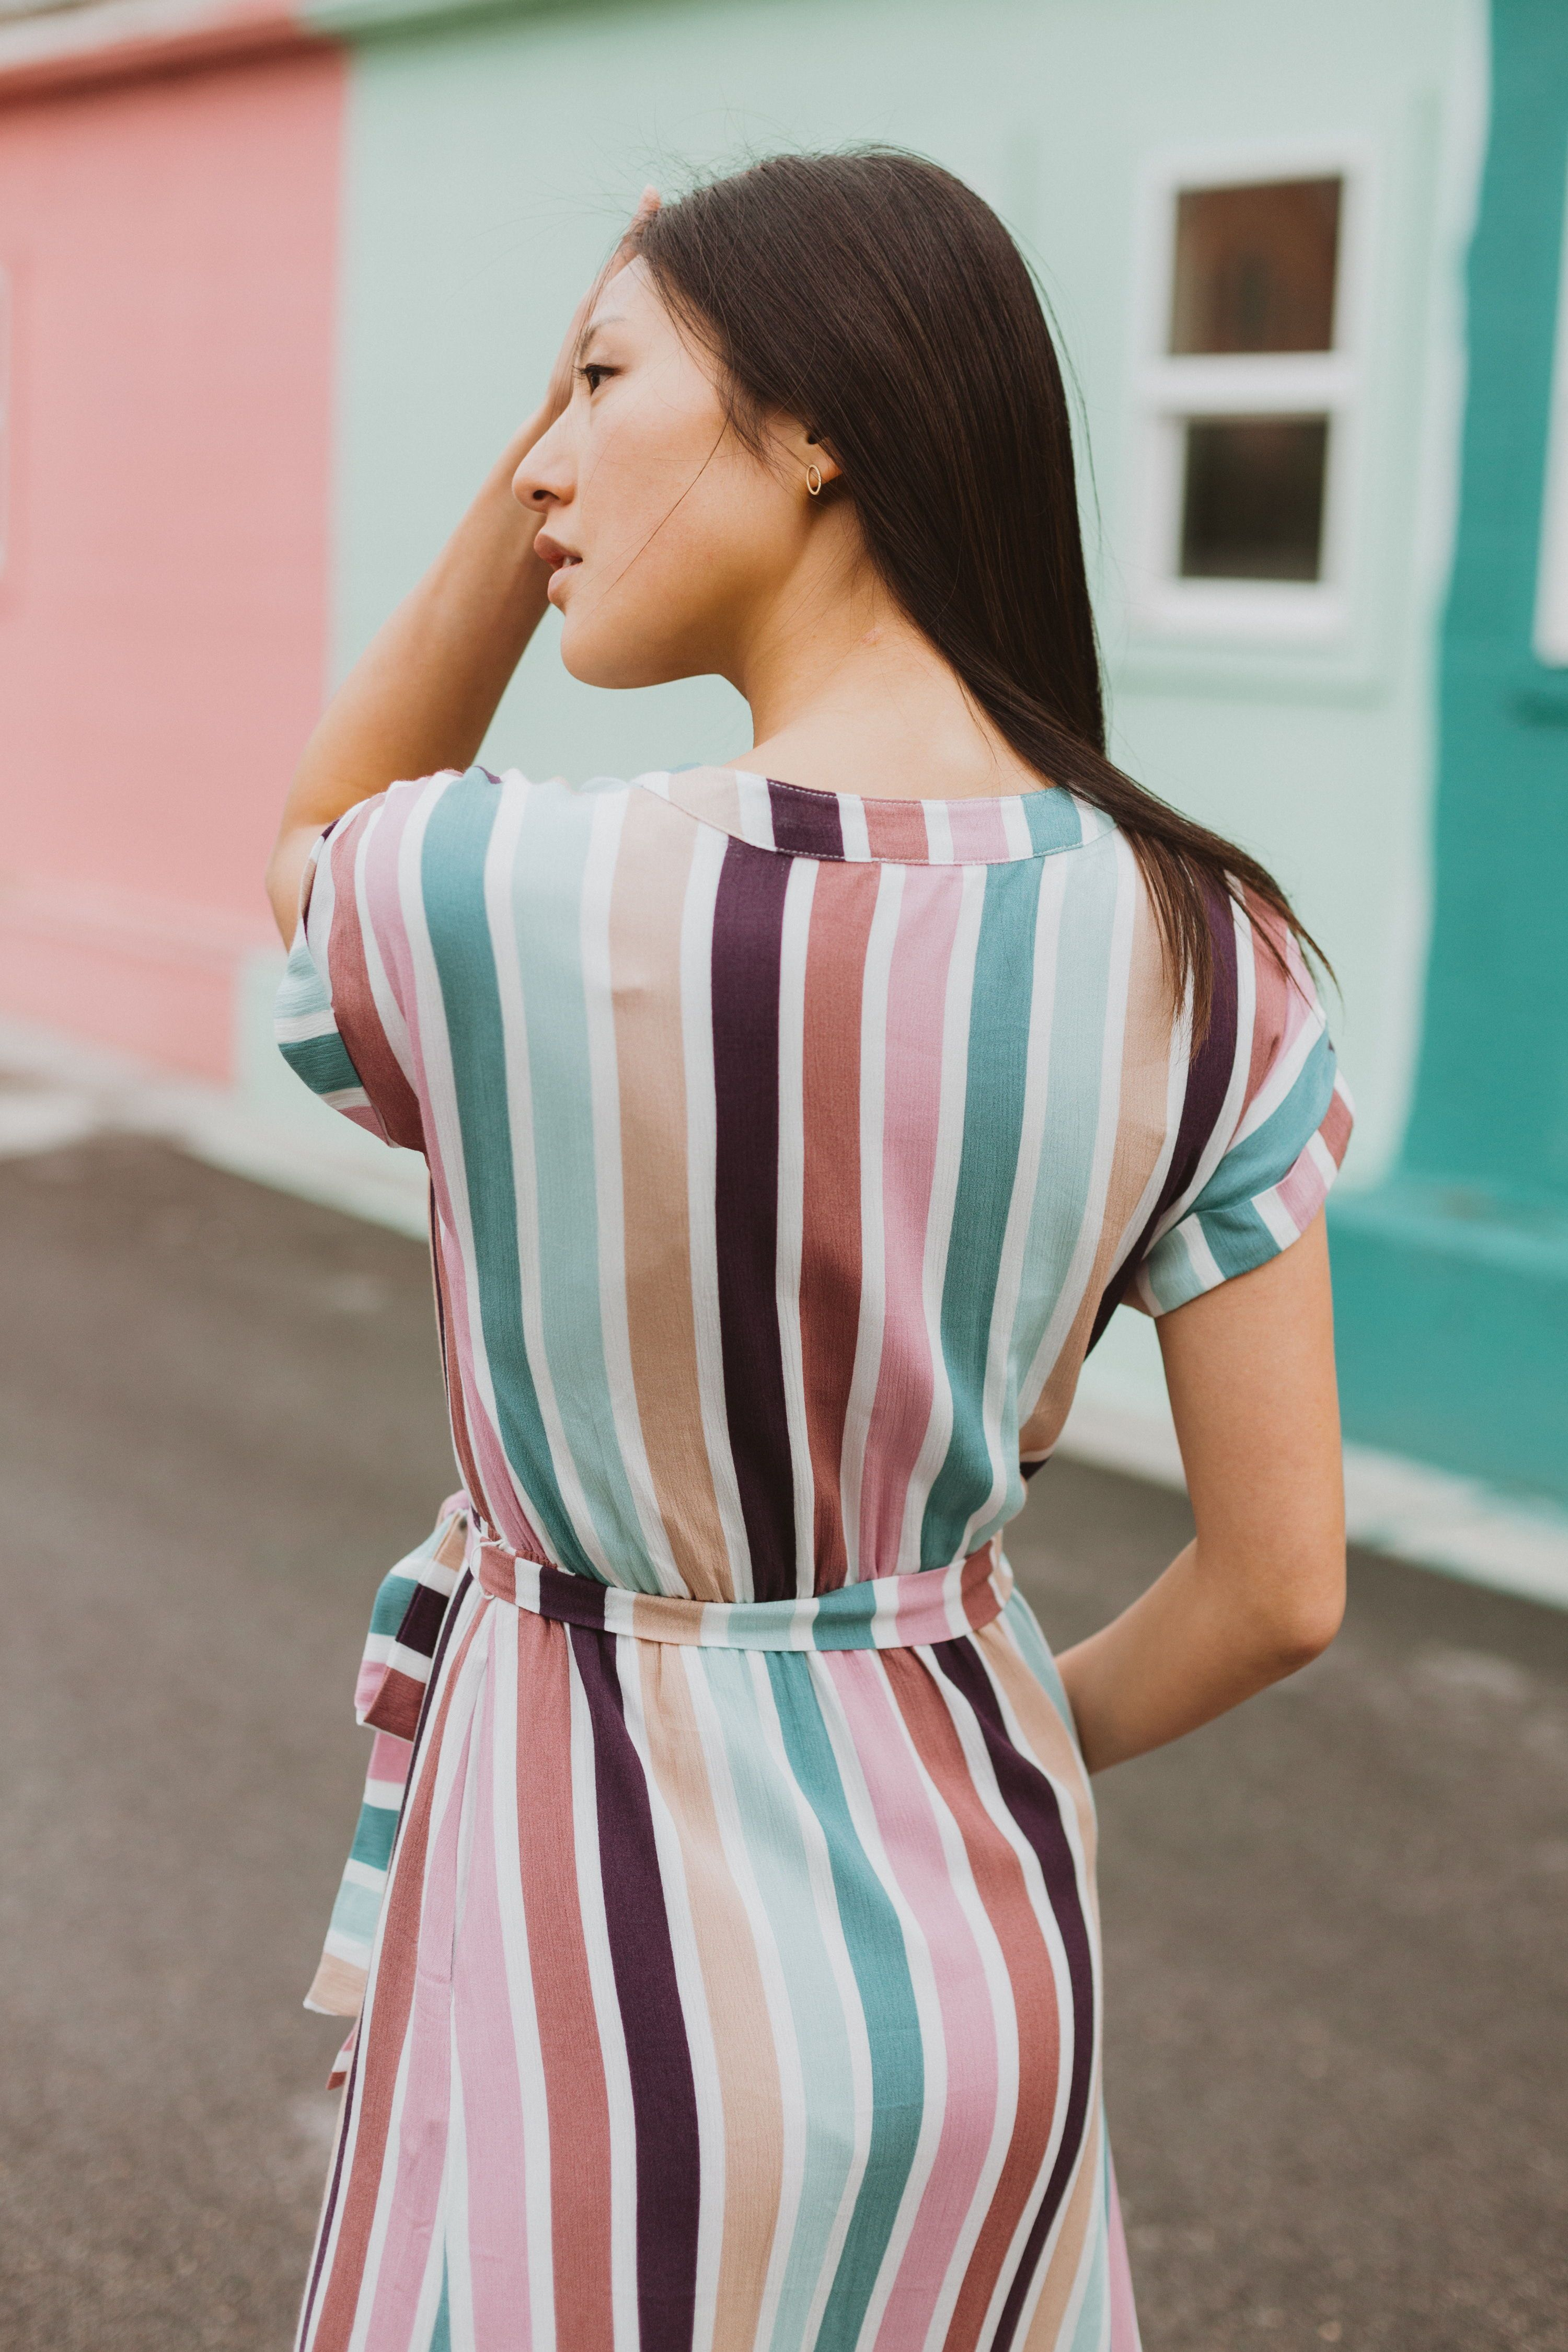 The Cha Cha Striped Maxi Dress Is As If All Your Favorite Things Came Together As A Dress It Is Nursing Friendly With Maxi Styles Striped Maxi Dresses Dresses [ 4500 x 3000 Pixel ]